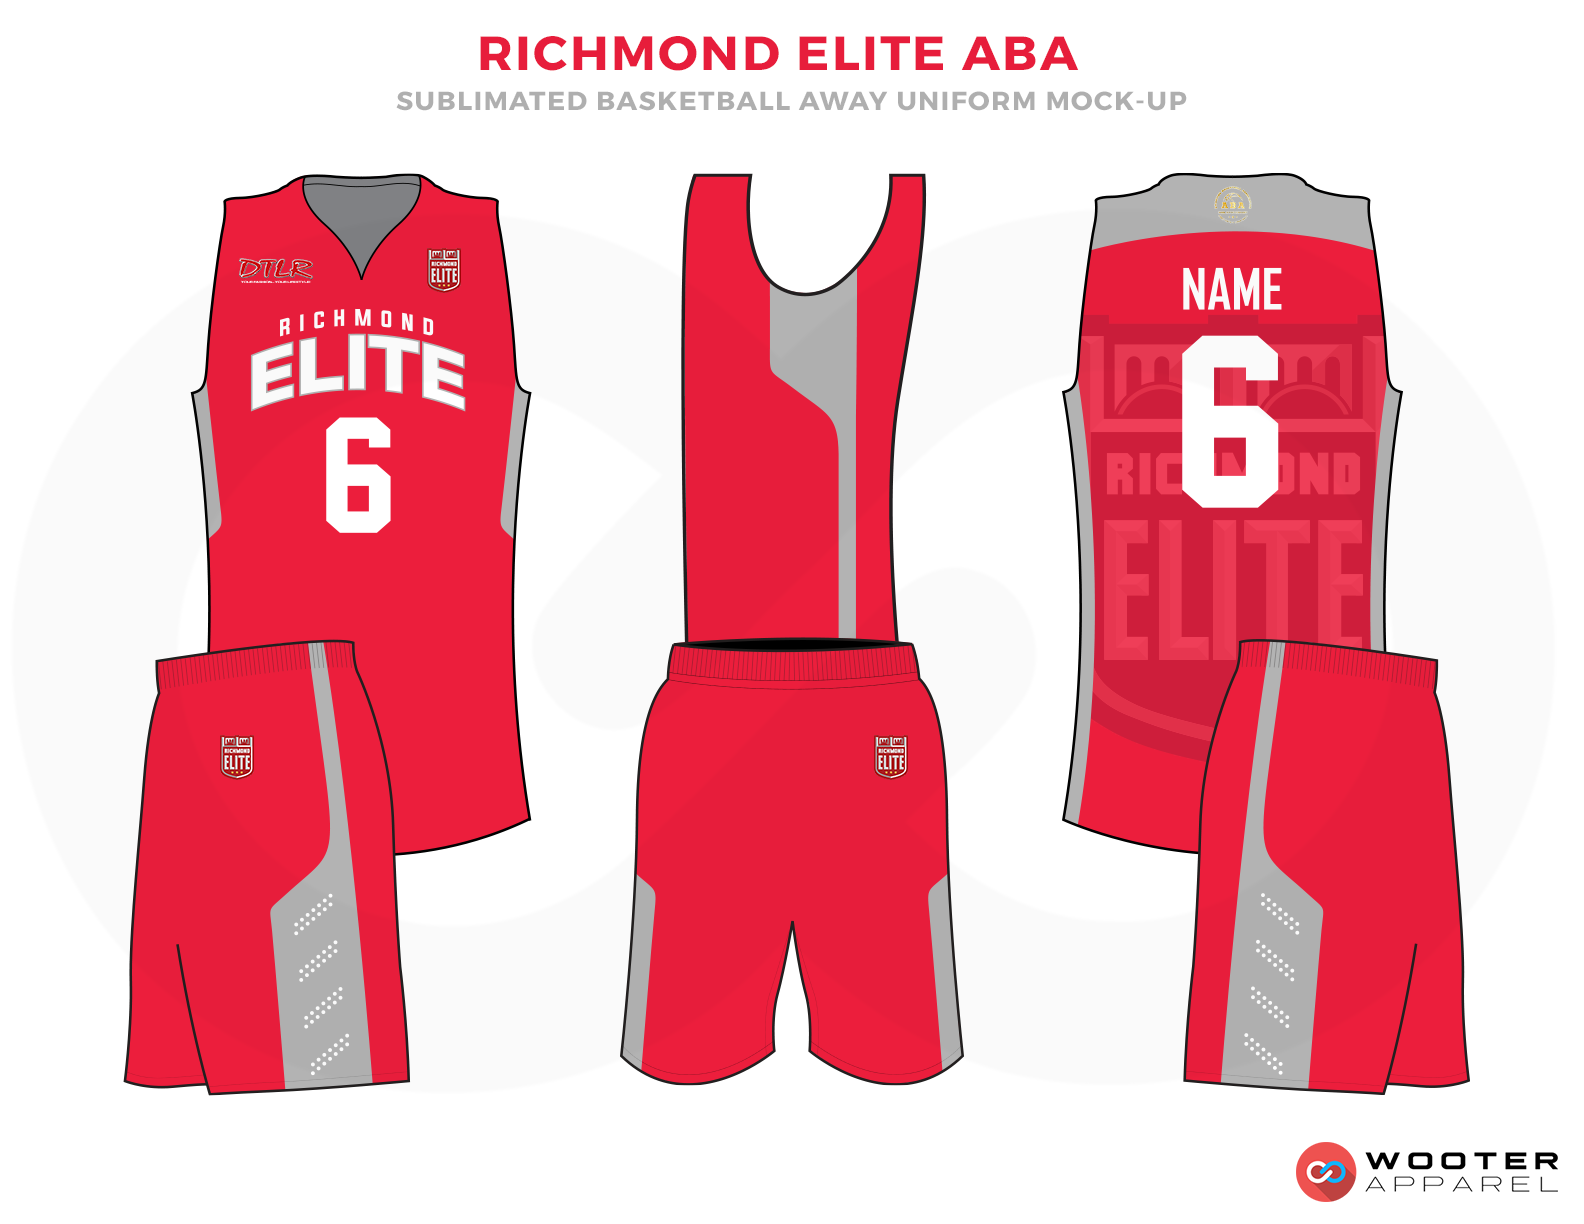 RICHMOND ELITE ABA Red Grey and White Basketball Uniforms, Jersey and Shorts